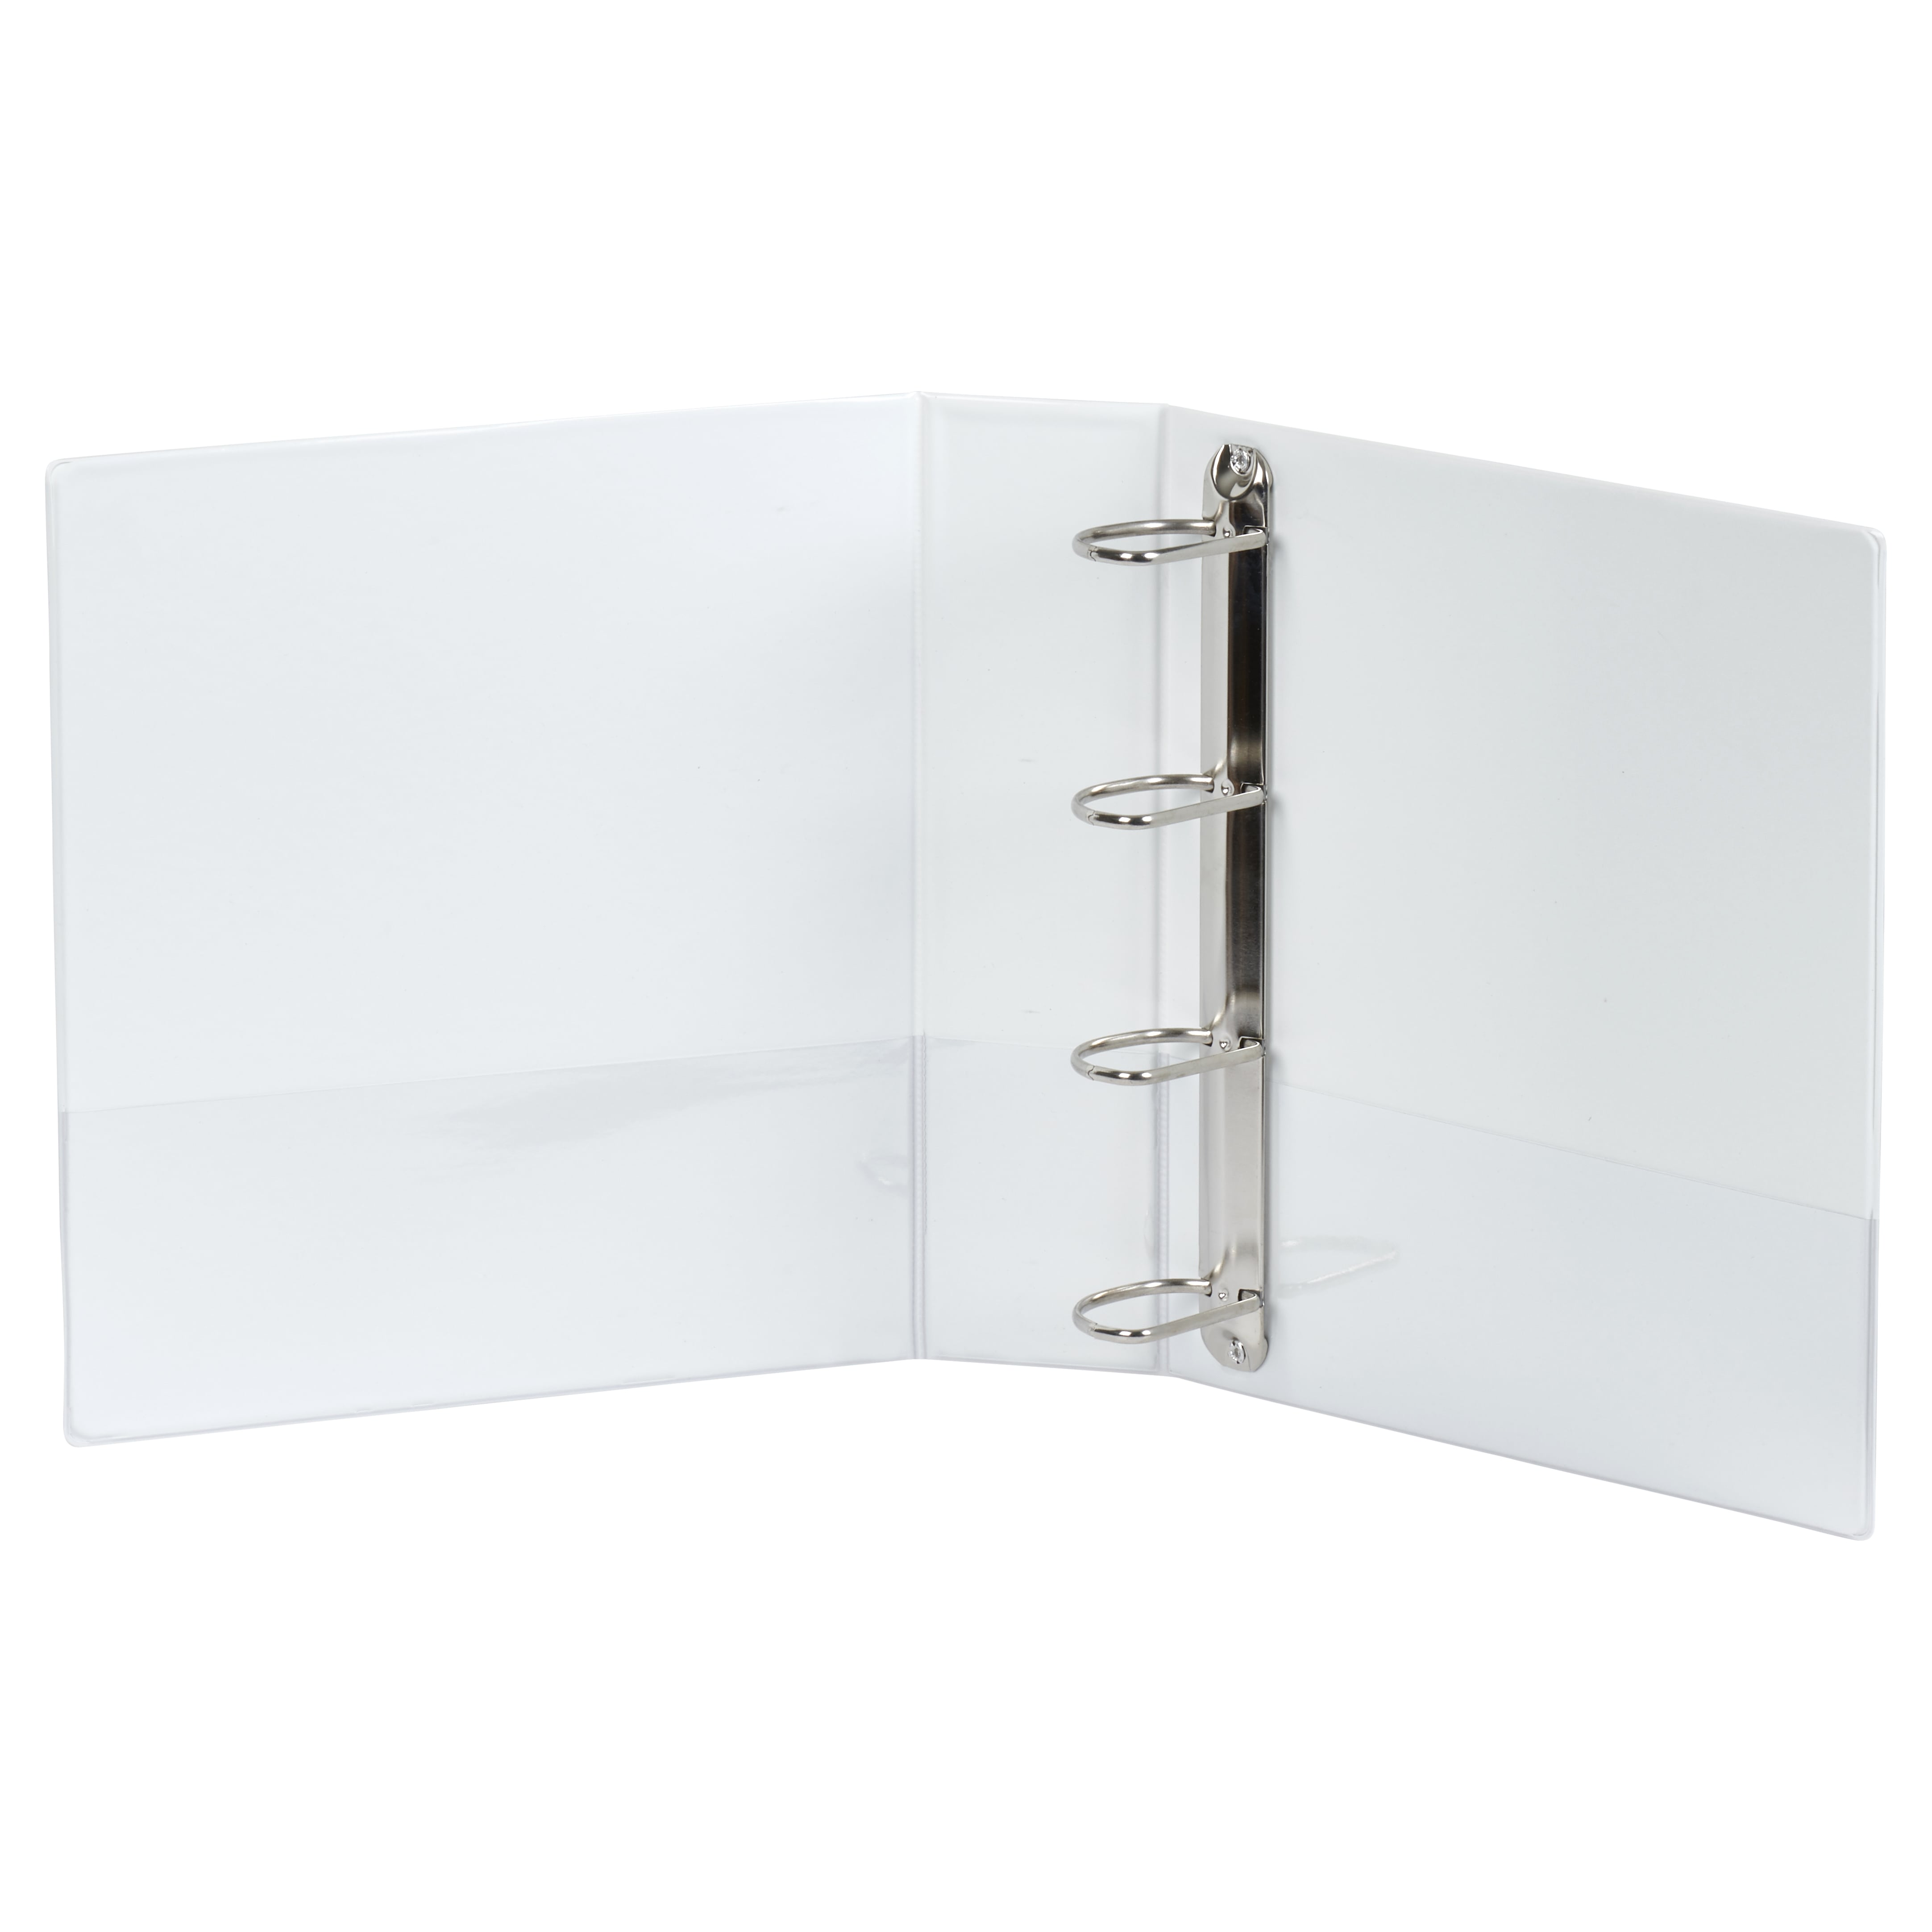 A4 4-Ring Binders